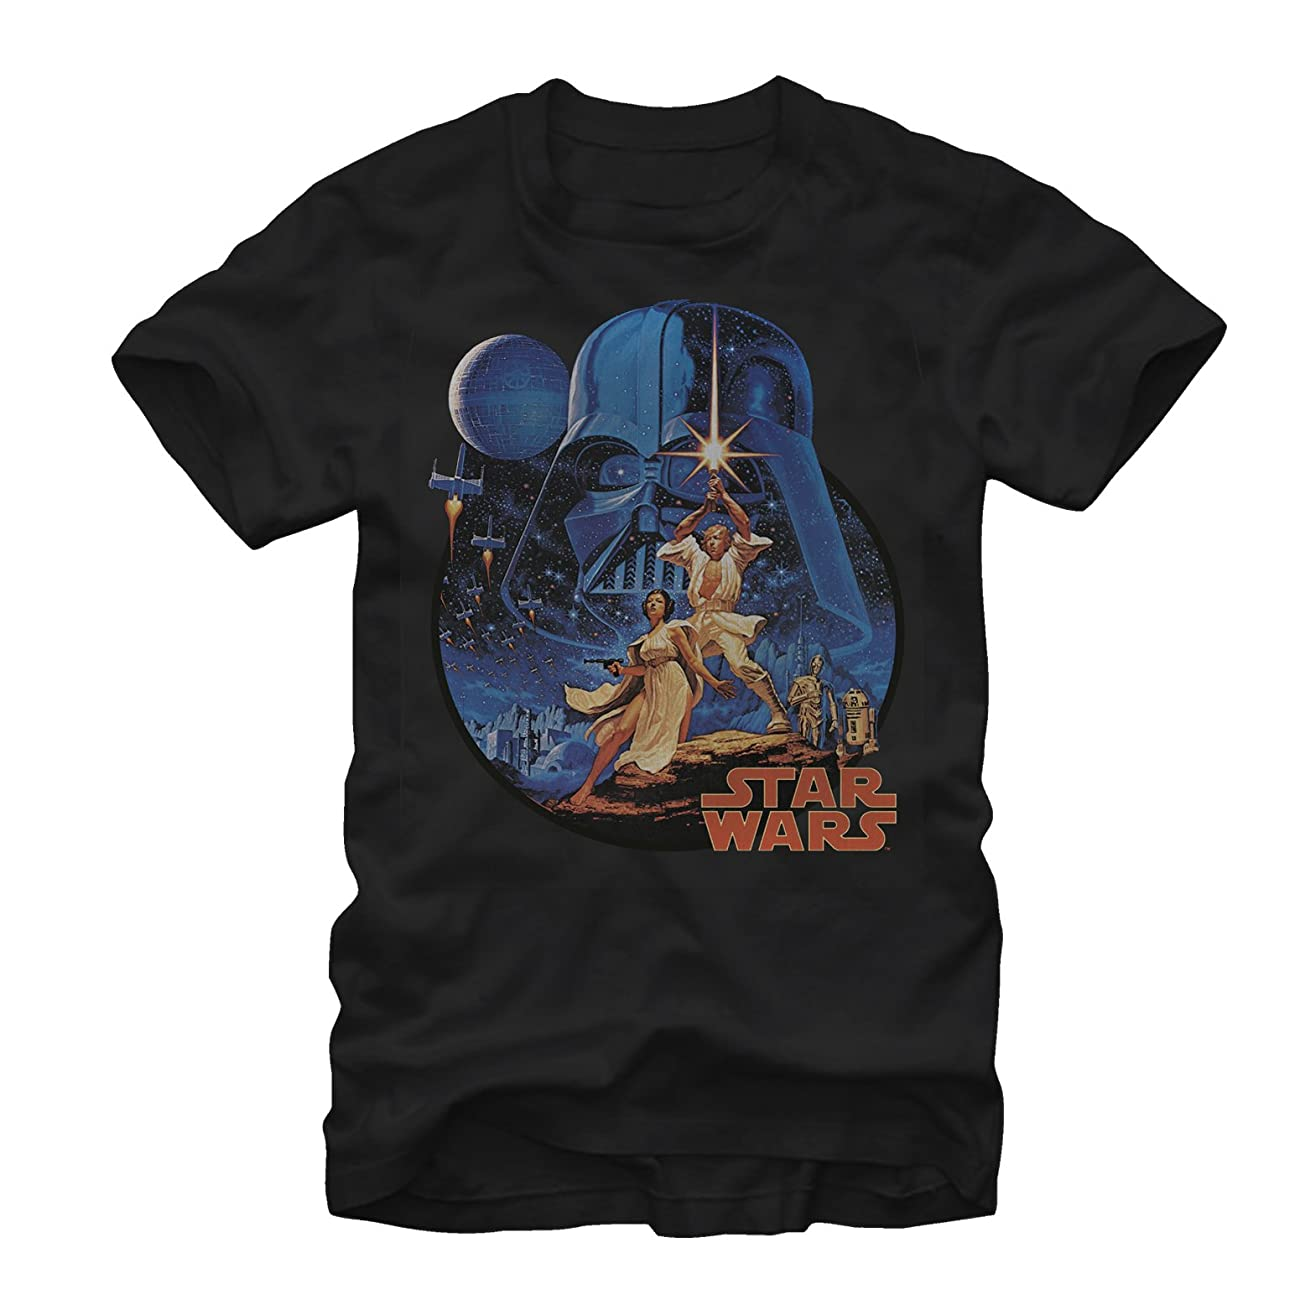 Star Wars Vintage Art Mens Graphic T Shirt 0